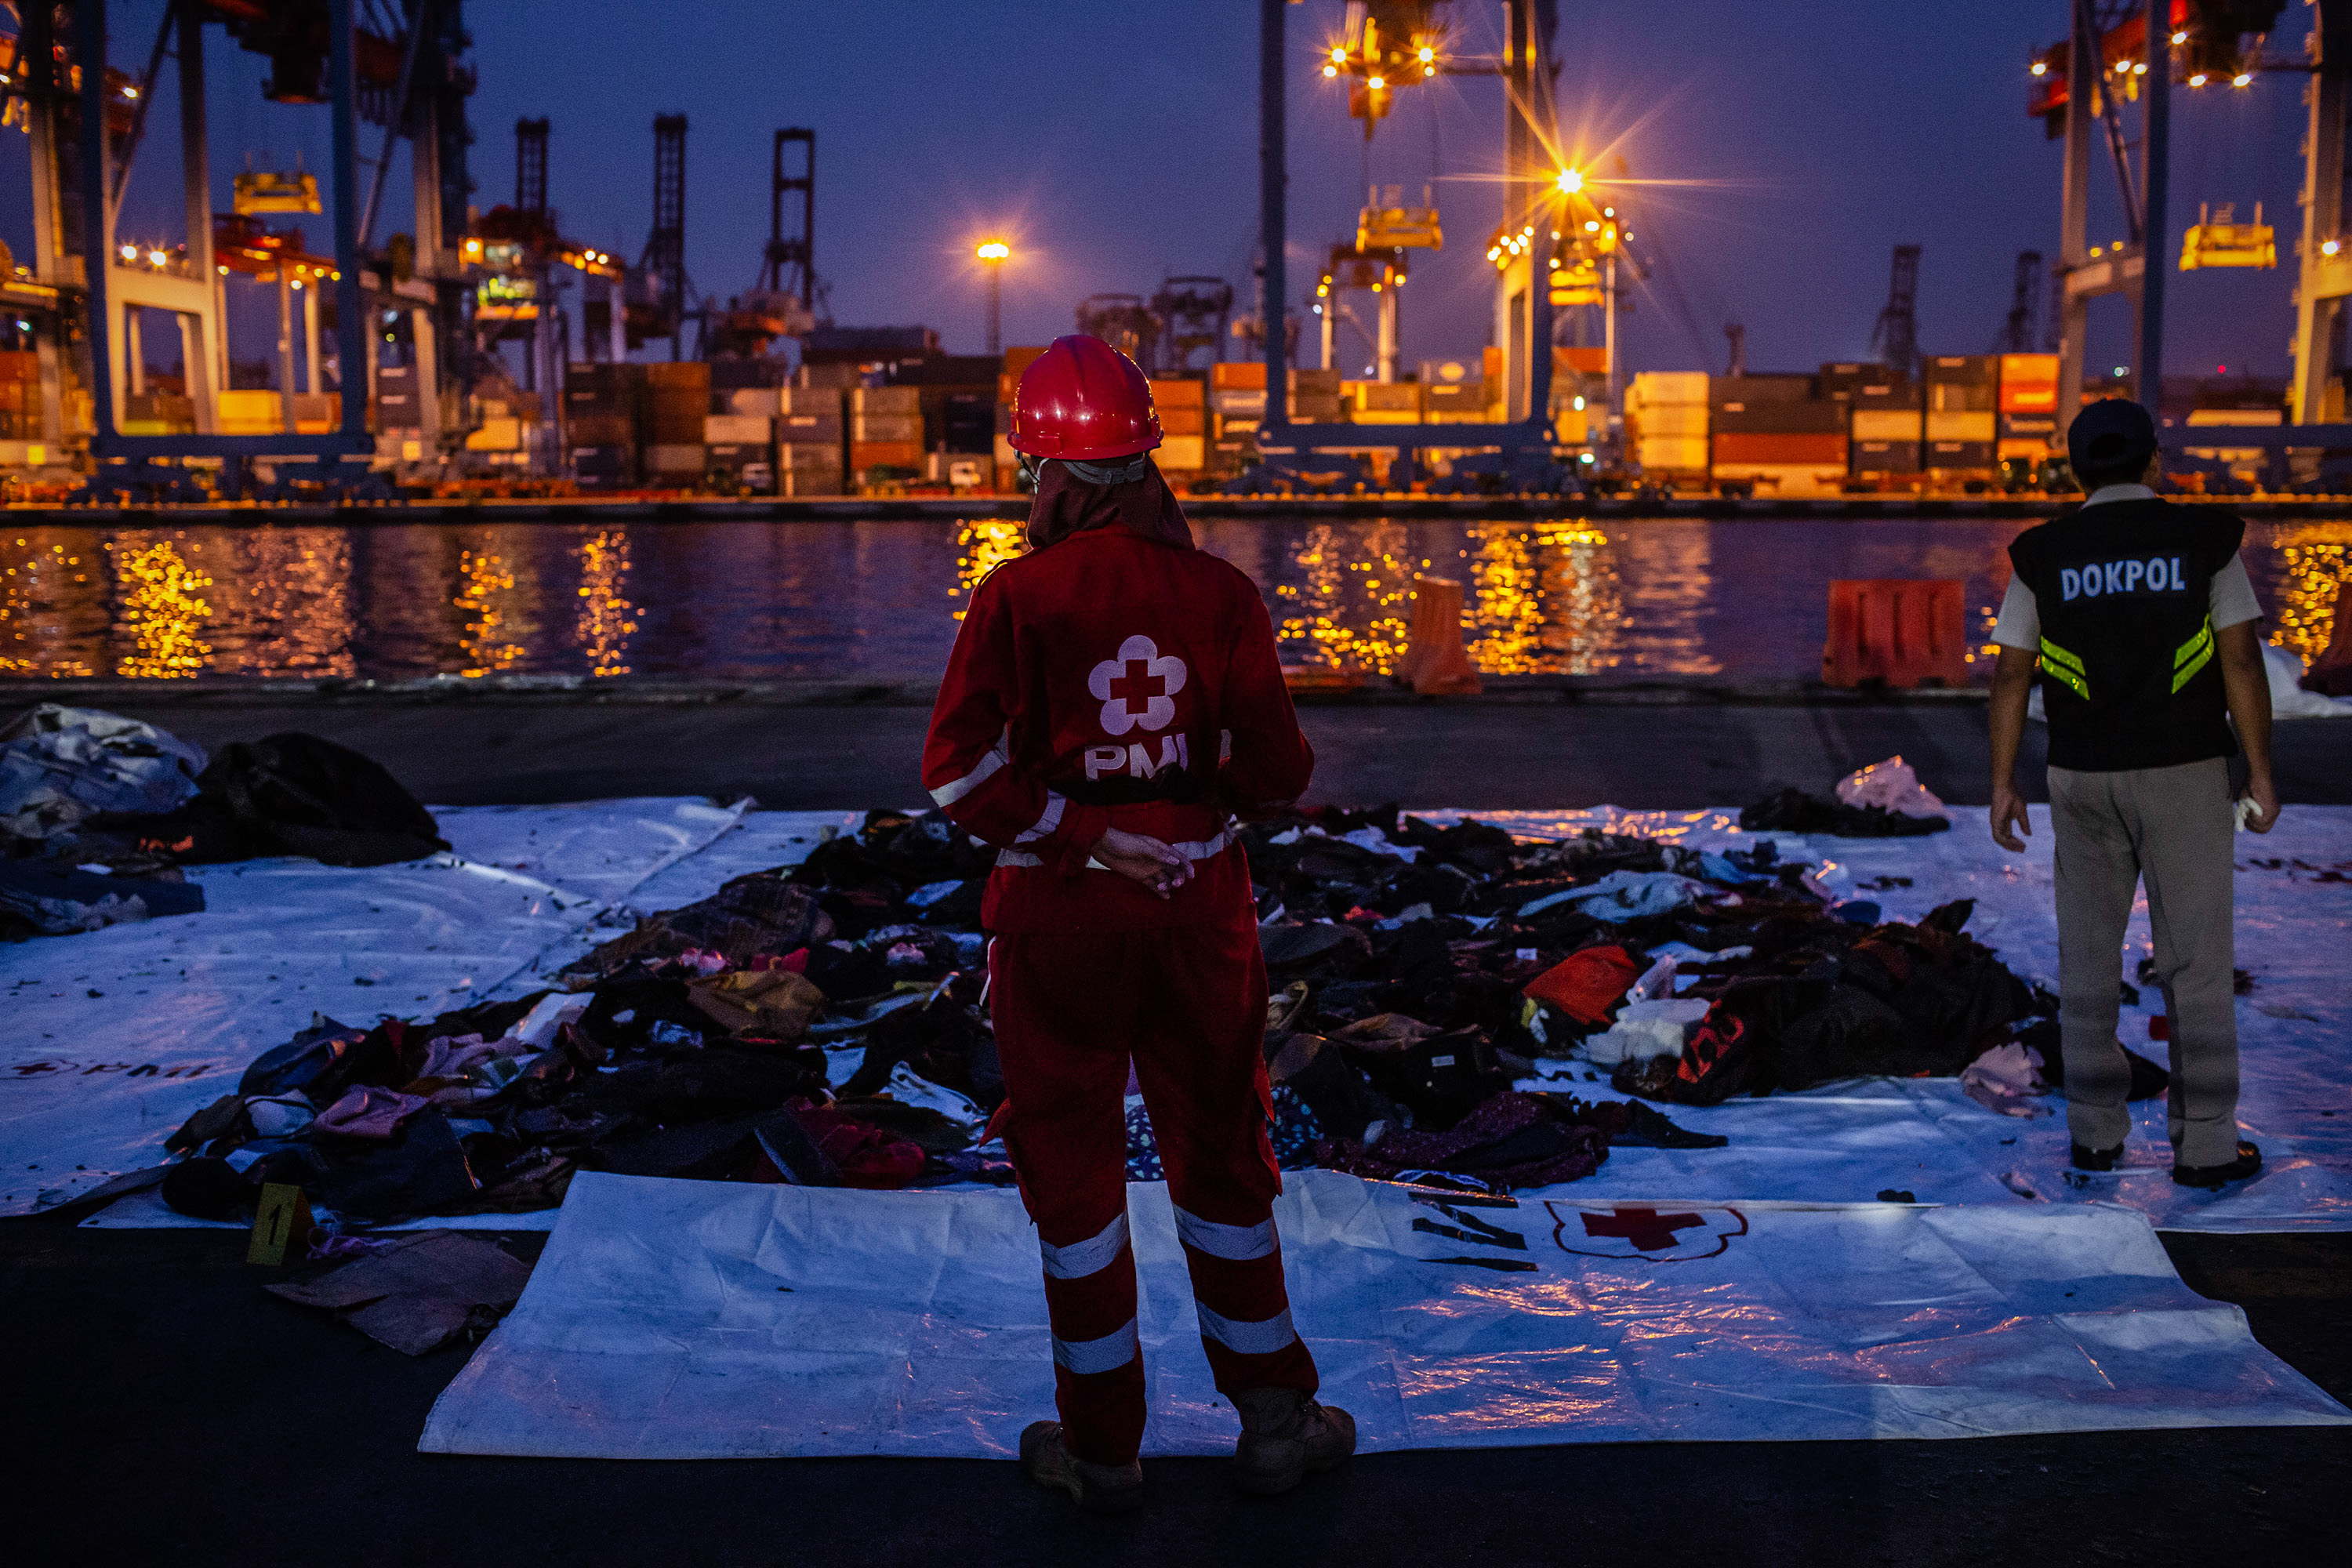 An Indonesian red cross member stands in front of recovered personal items from Lion Air flight JT 610 at the Tanjung Priok port on Tuesday in Jakarta.